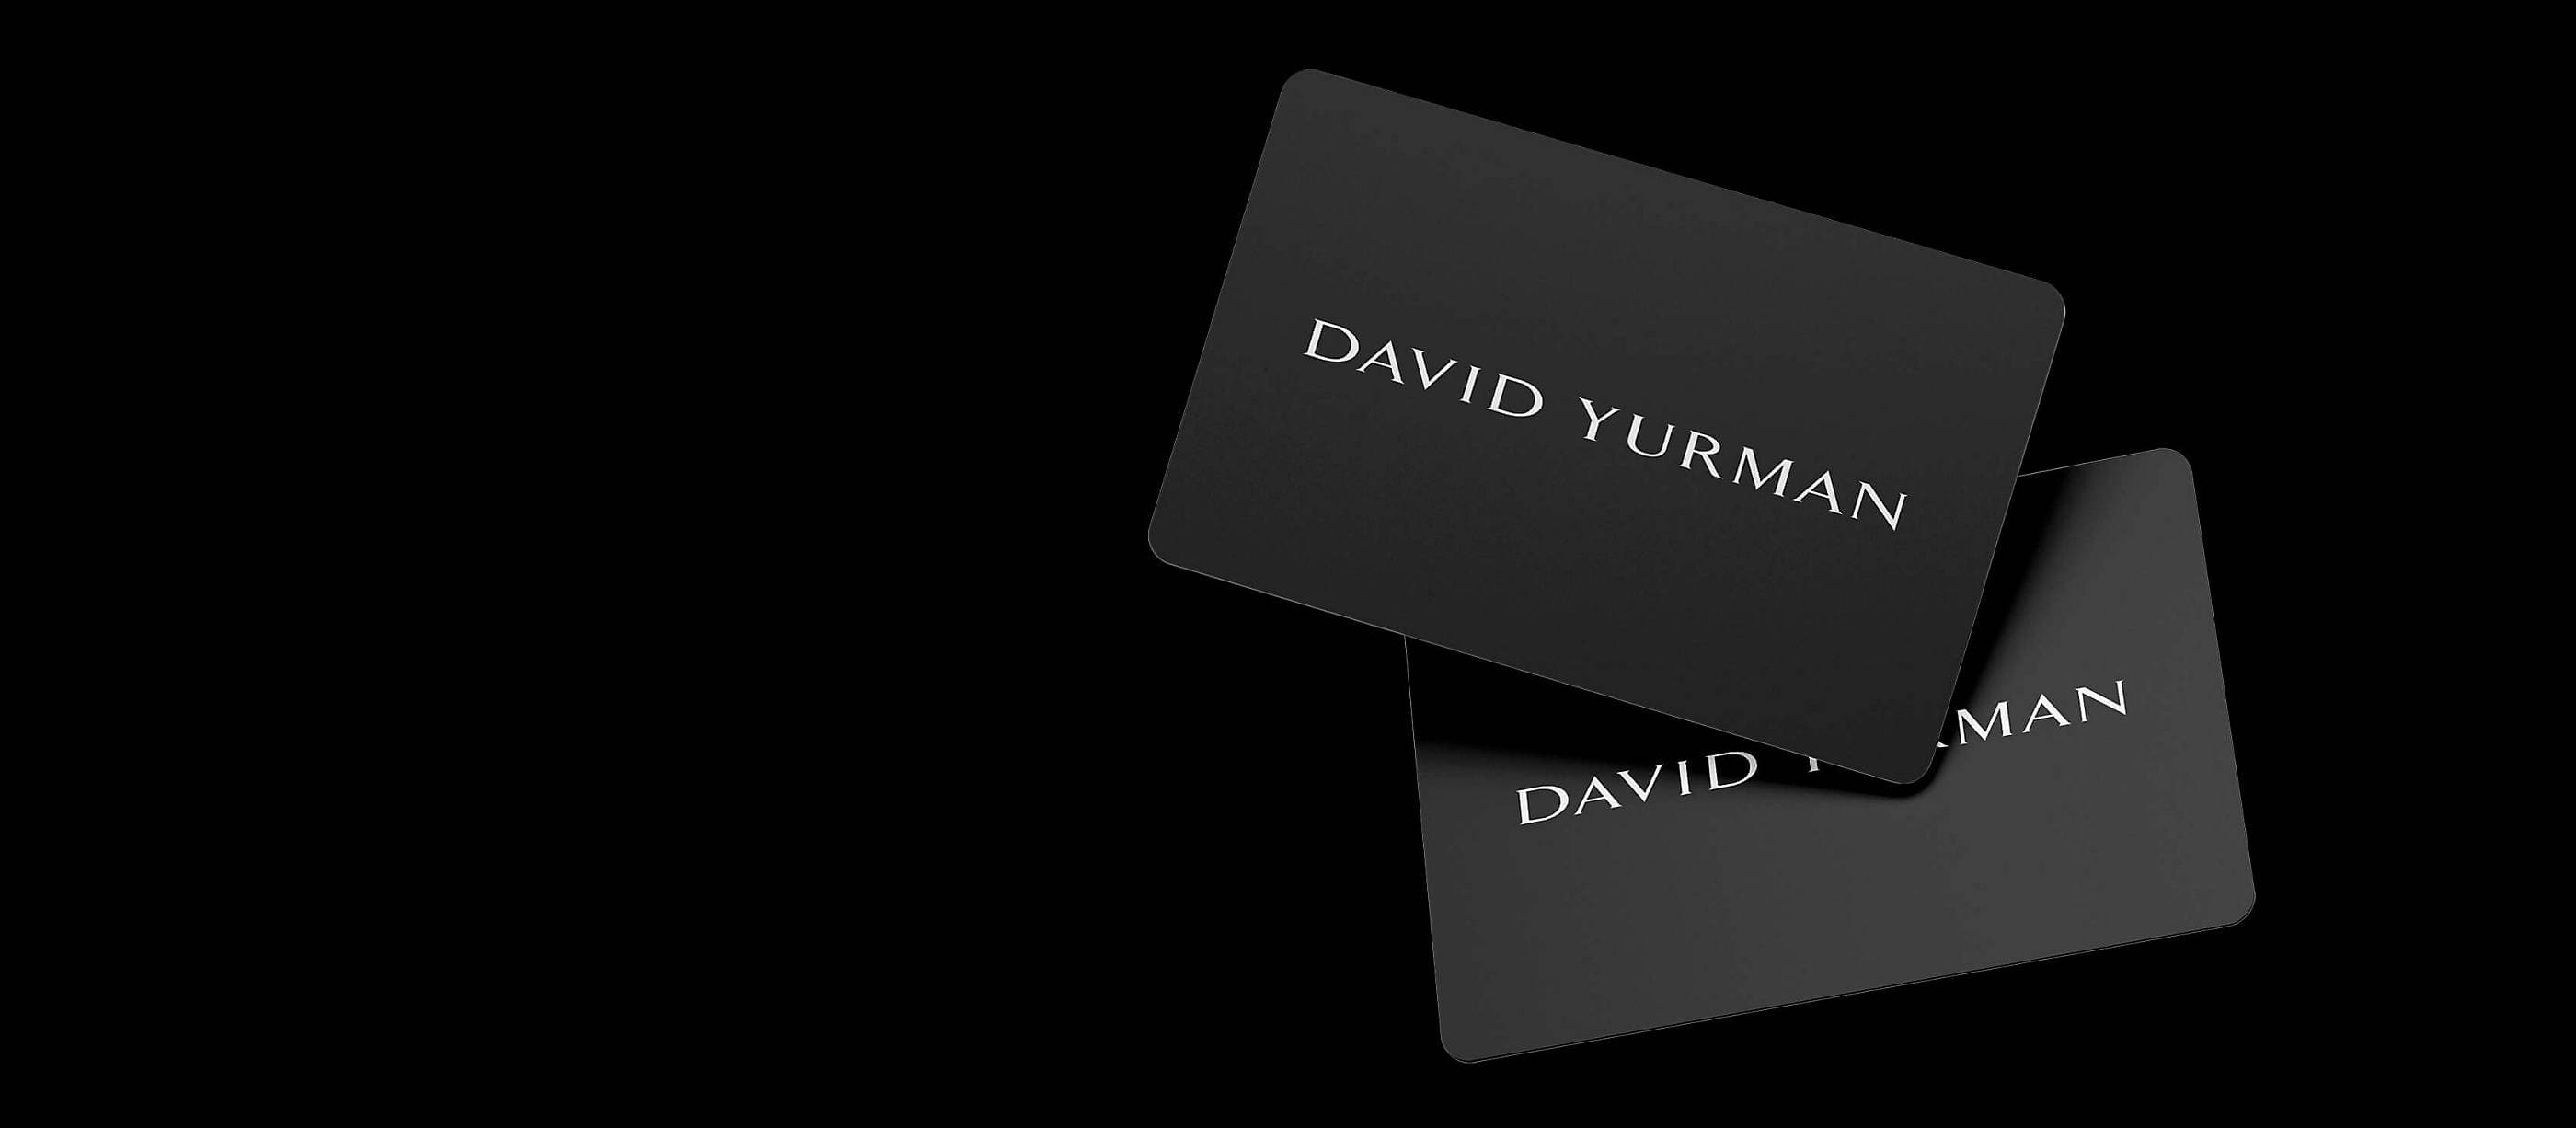 A color photo shows two David Yurman black gift cards floating in a starry night sky with white clouds.